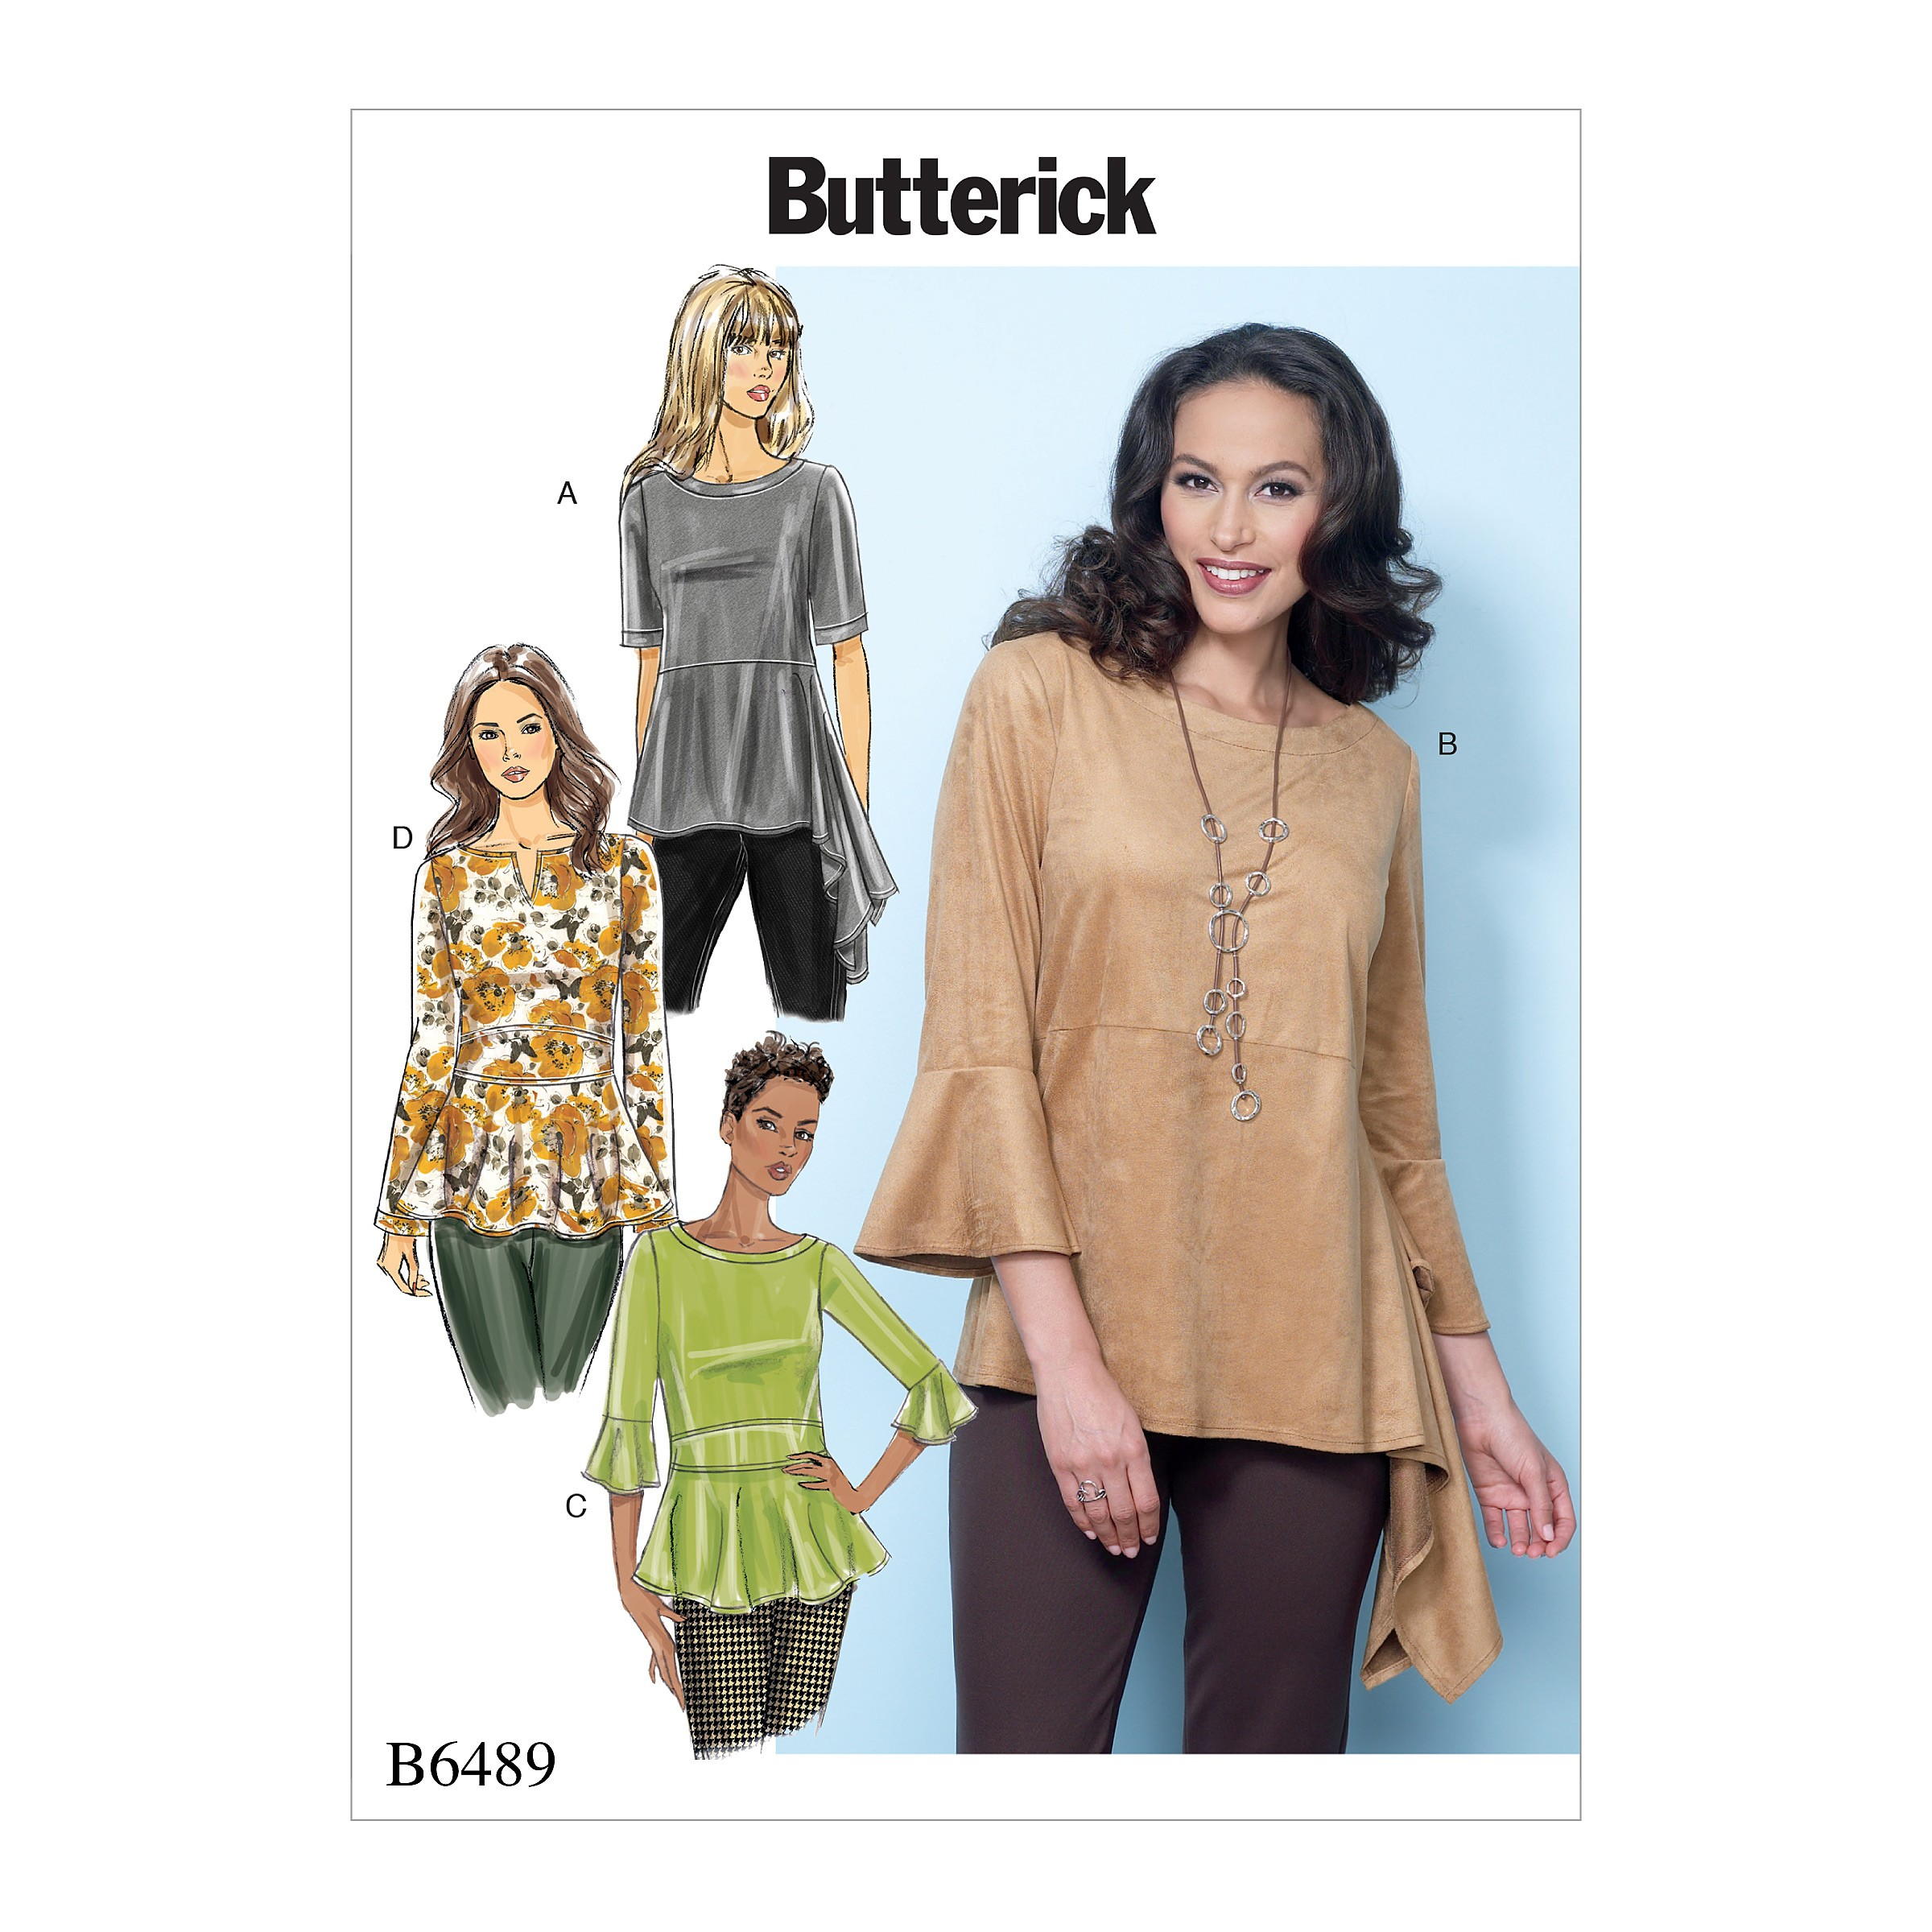 Butterick Sewing Pattern 6489 Misses' Pullover Topswith Sleeve And Peplum Variations.